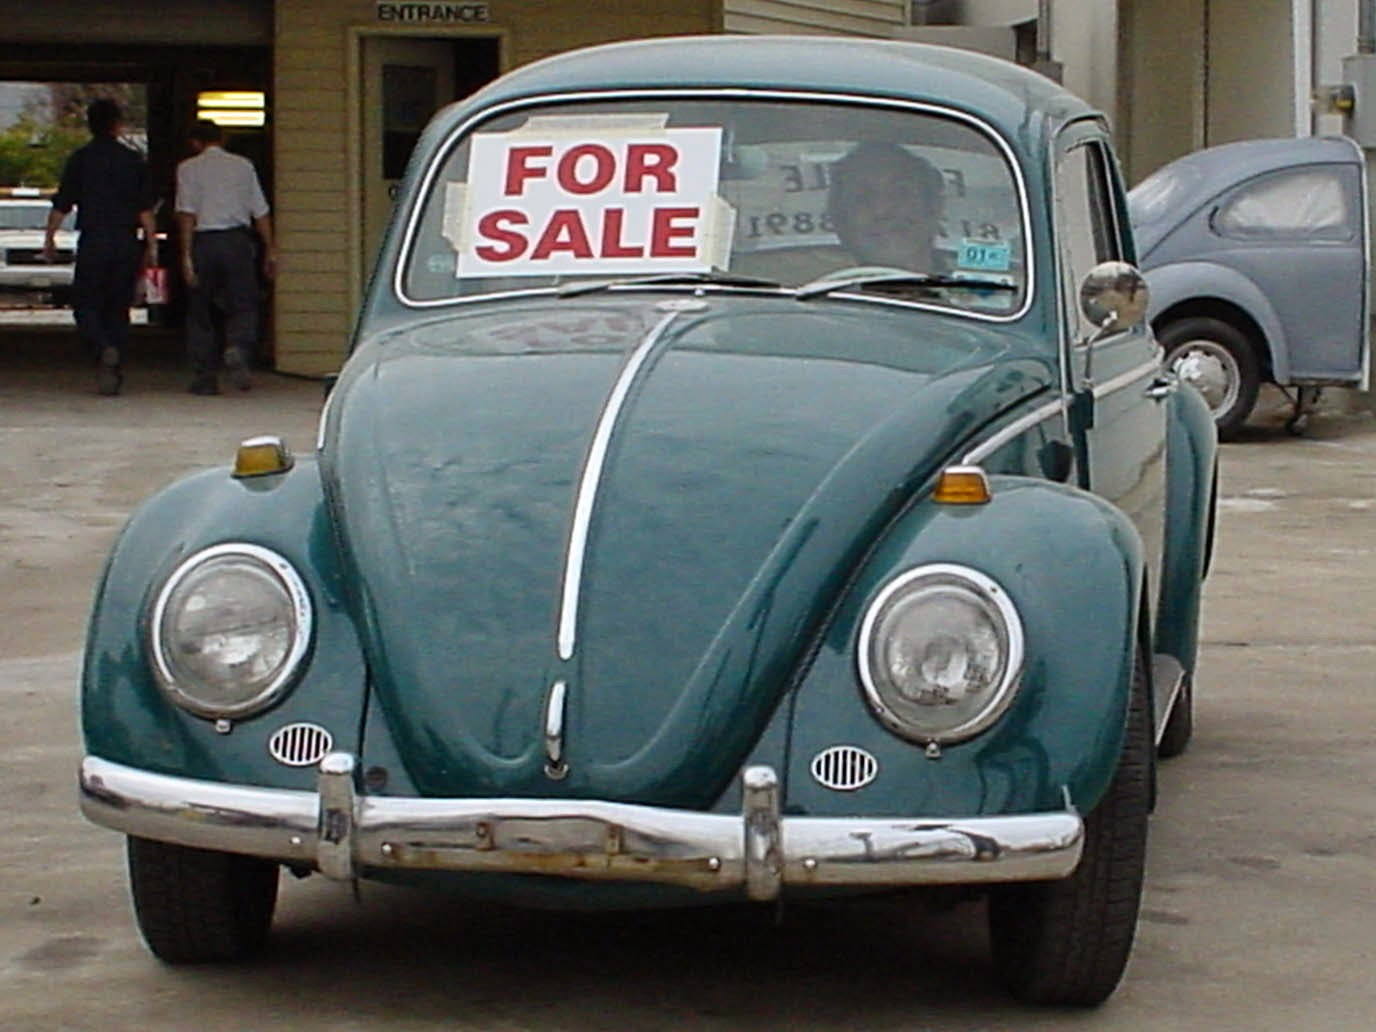 Cars UPG: Cars For Sale